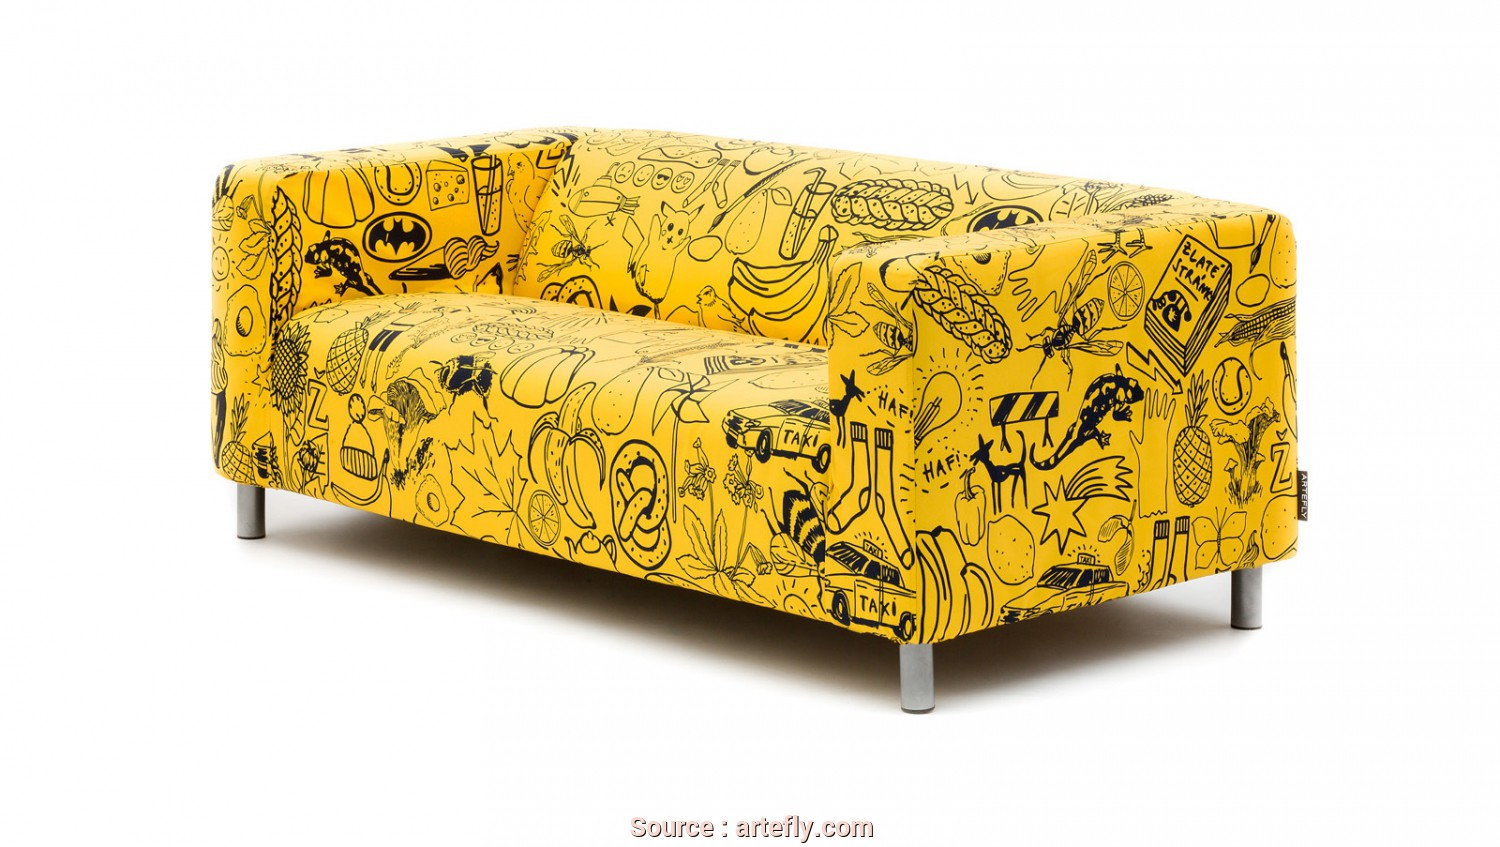 Semplice 5 Ikea Klippan Sofa Covers Yellow